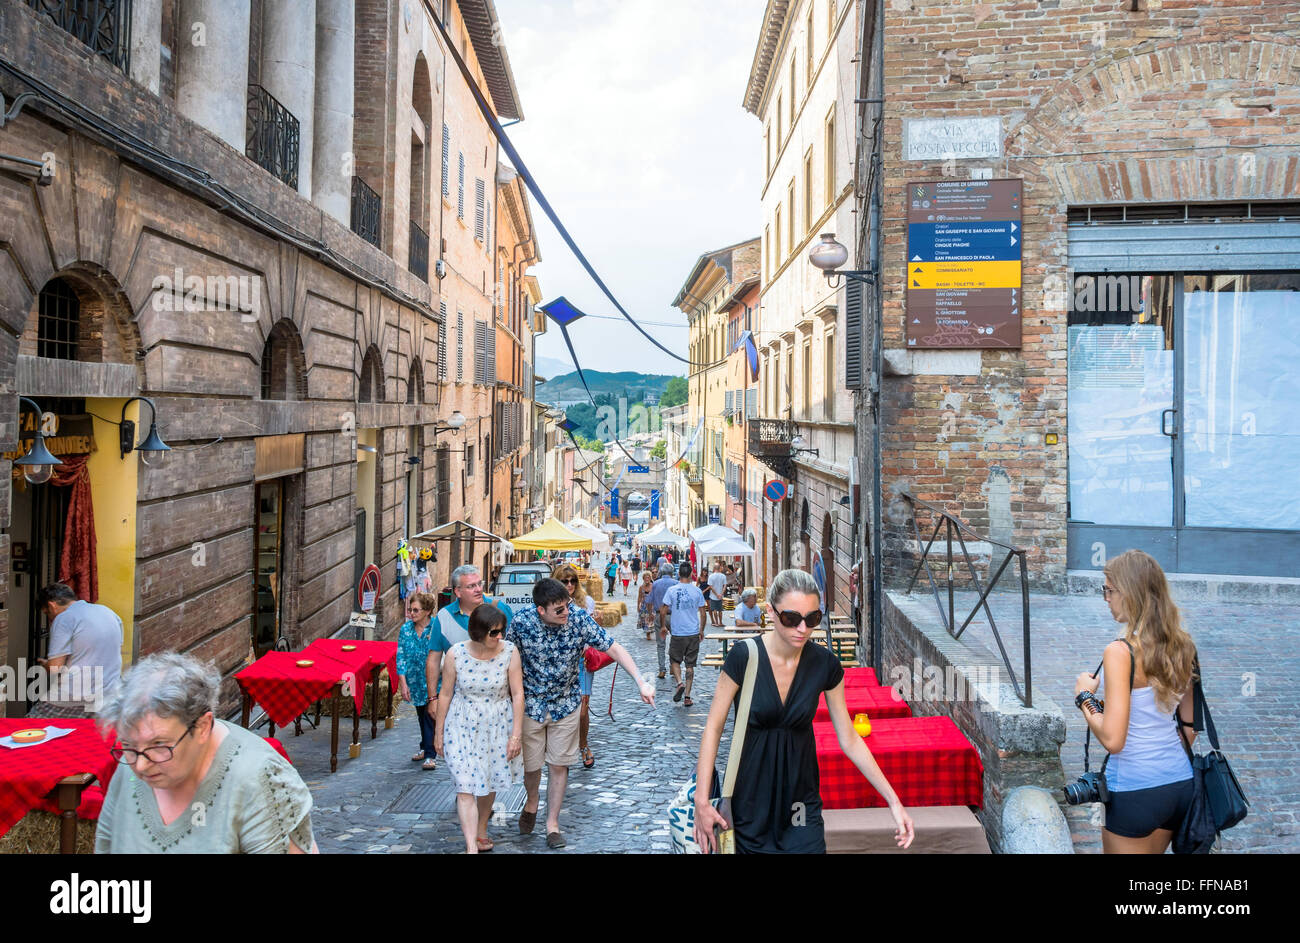 street view with tourists in Urbino, Italy. - Stock Image